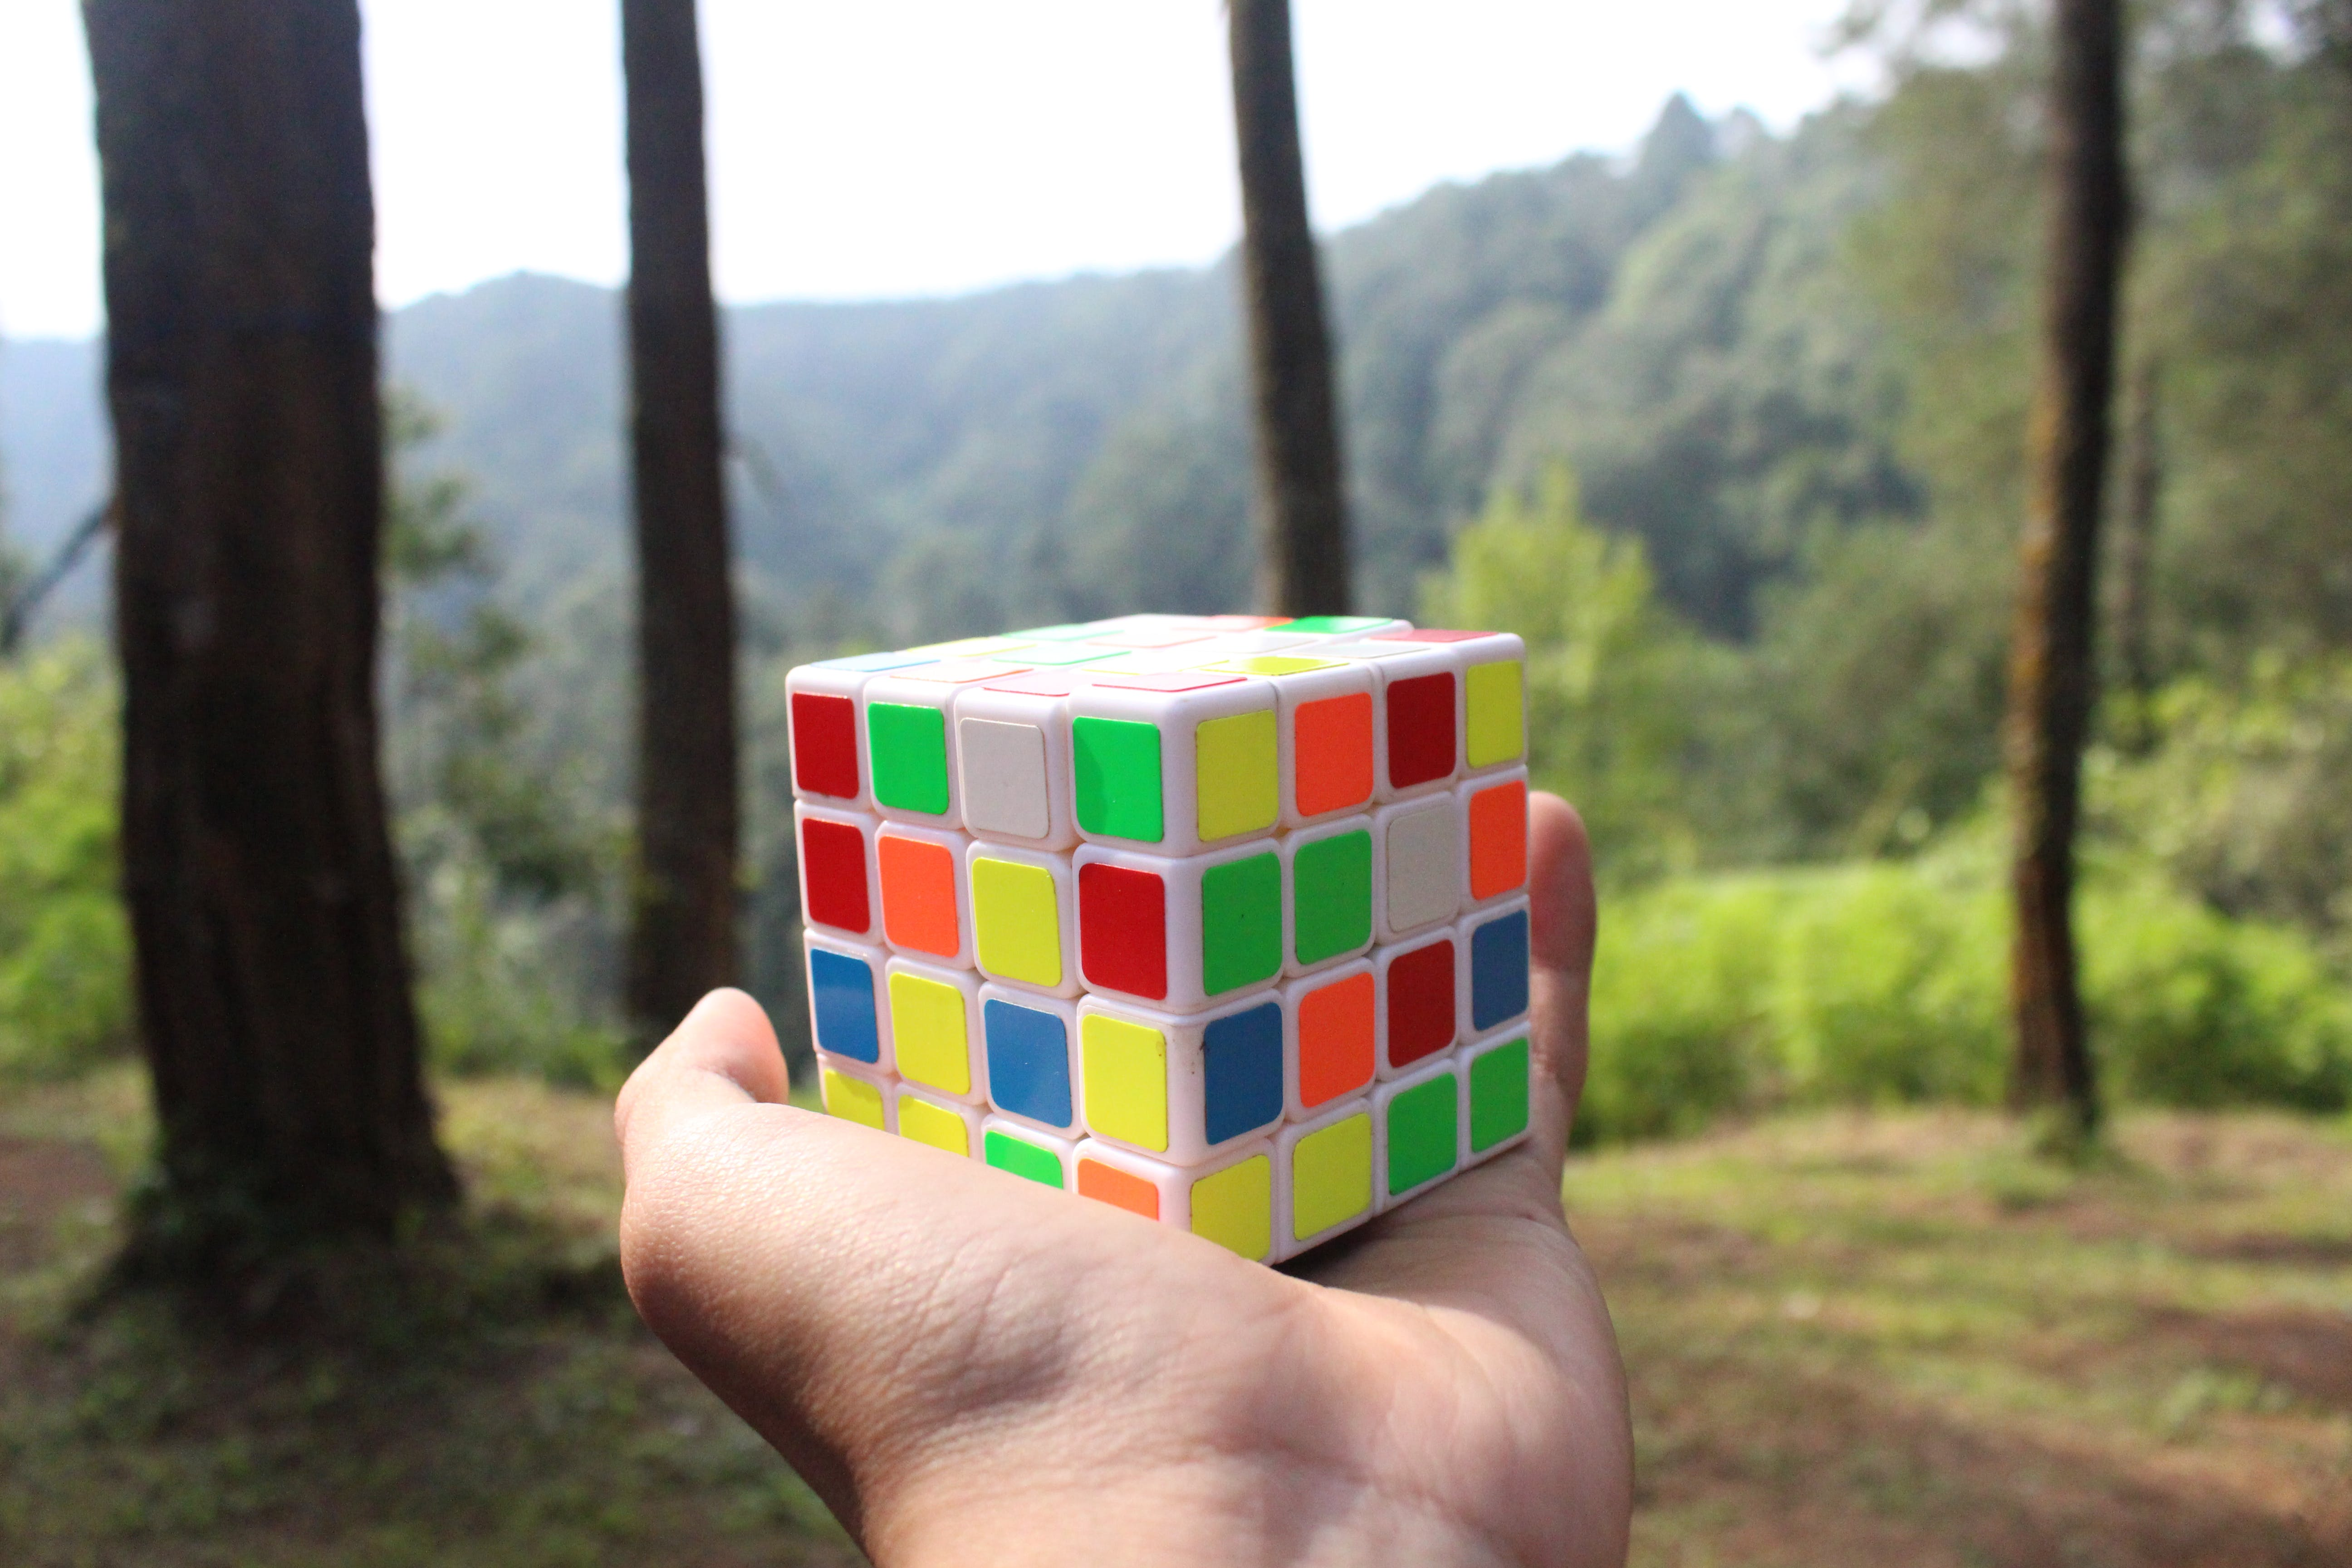 Free stock photo of nature photography, rubik's cube